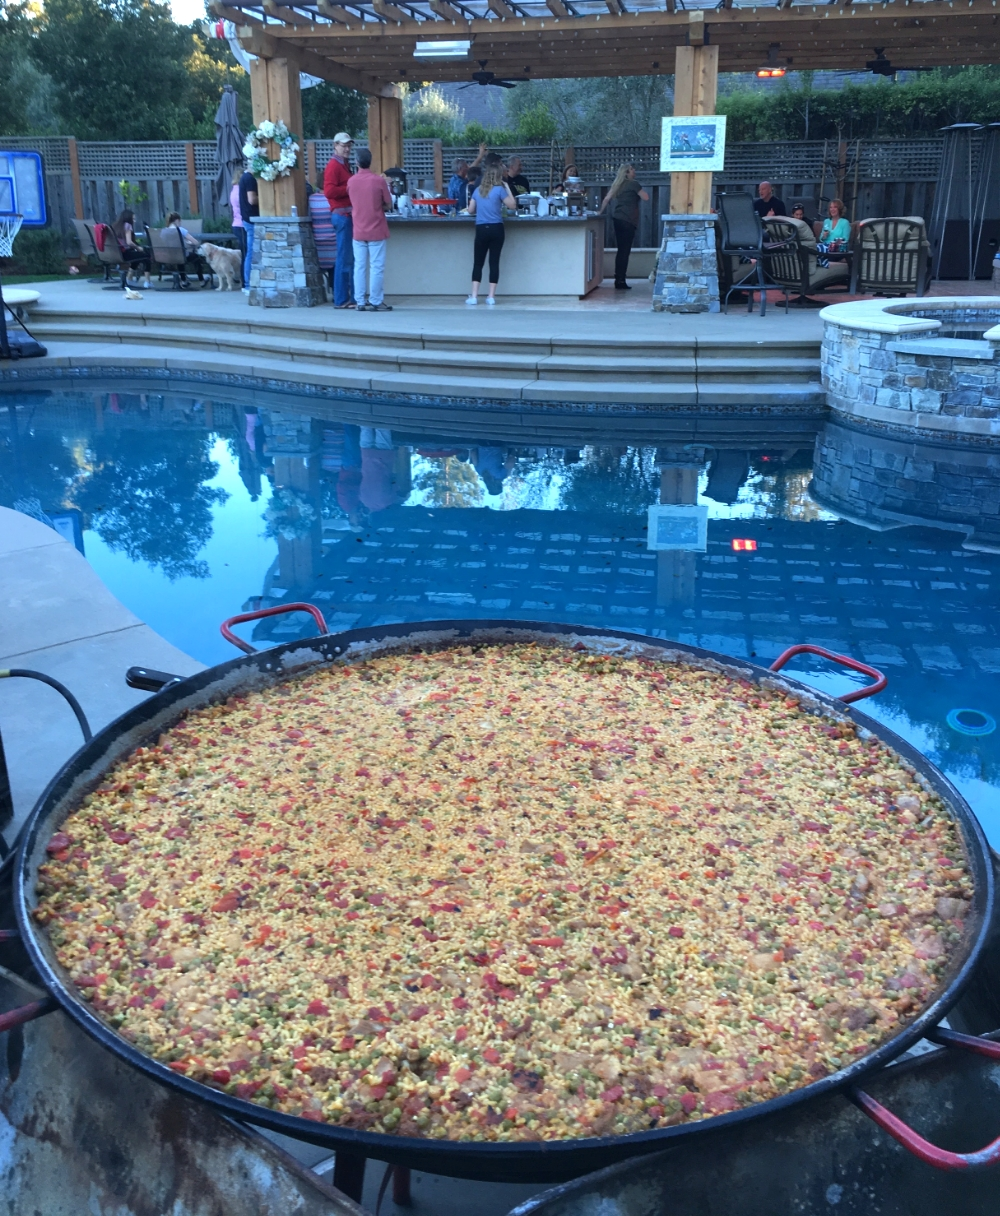 00_PaellaPoolparty.jpg